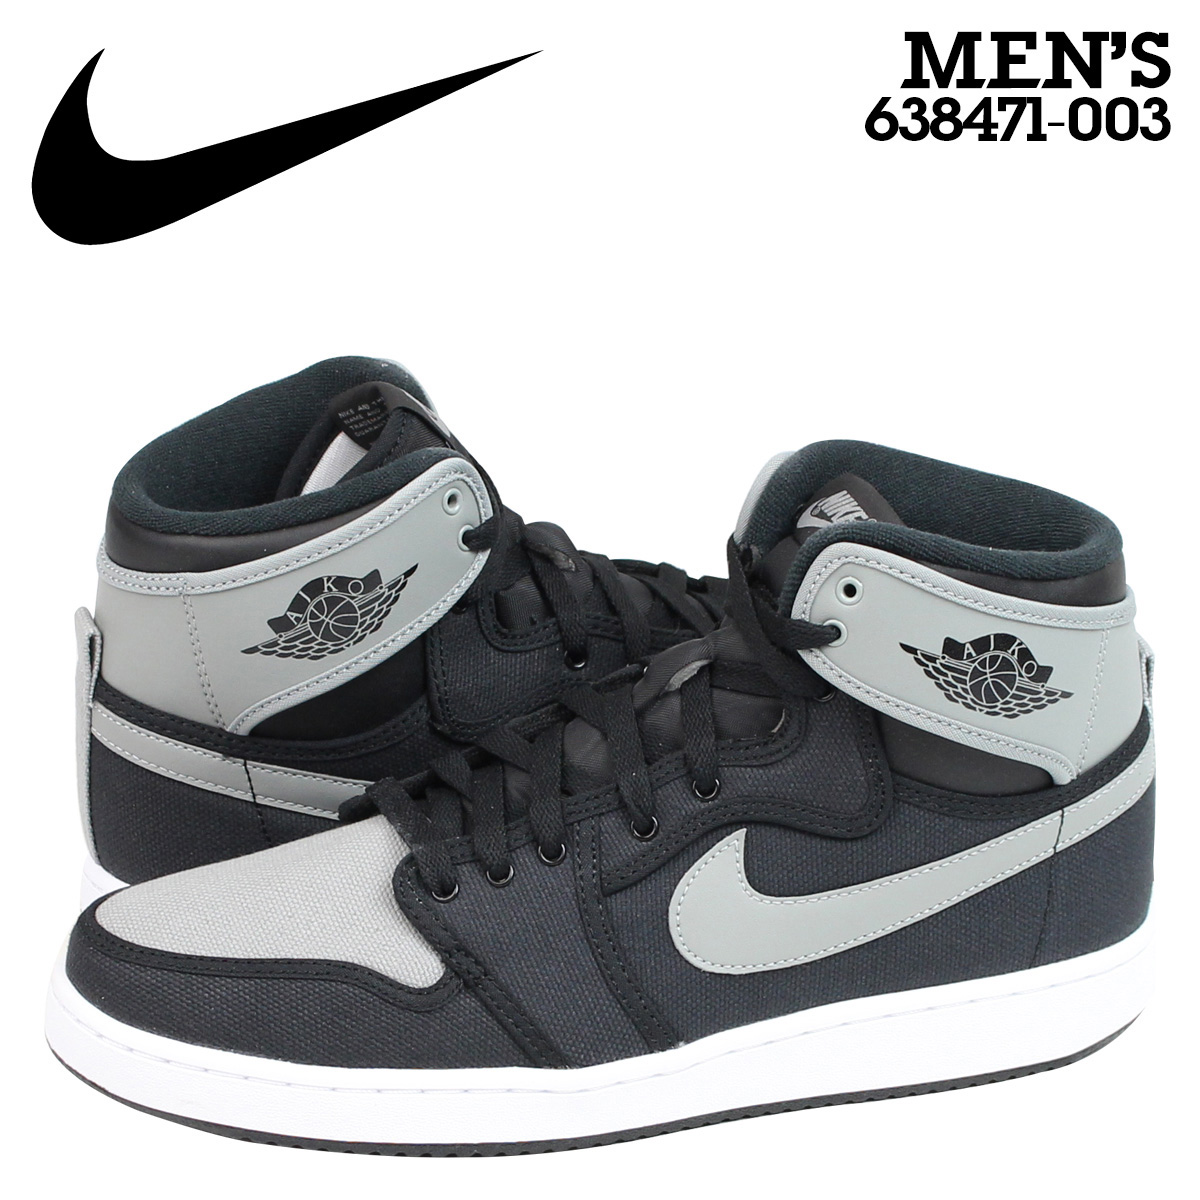 michael jordan mens shoes nz